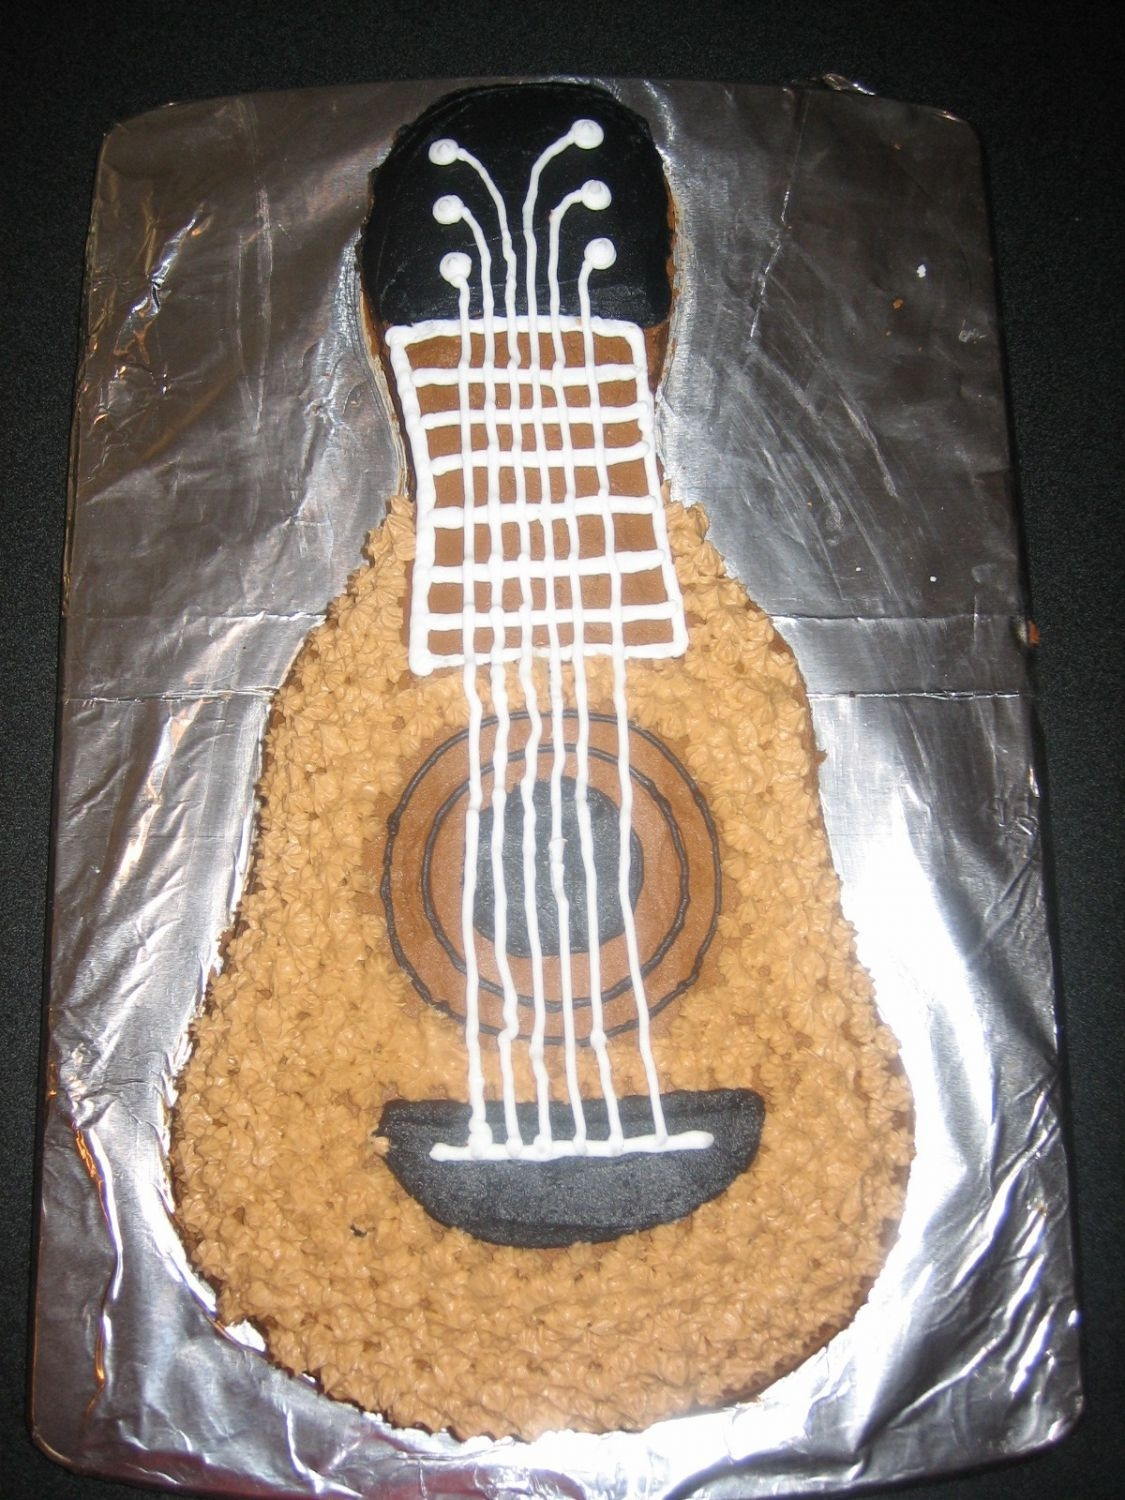 Guitar Cake   Second cake I ever made outside of the Wilton classes. Made it for a guitar playing friend of mine.